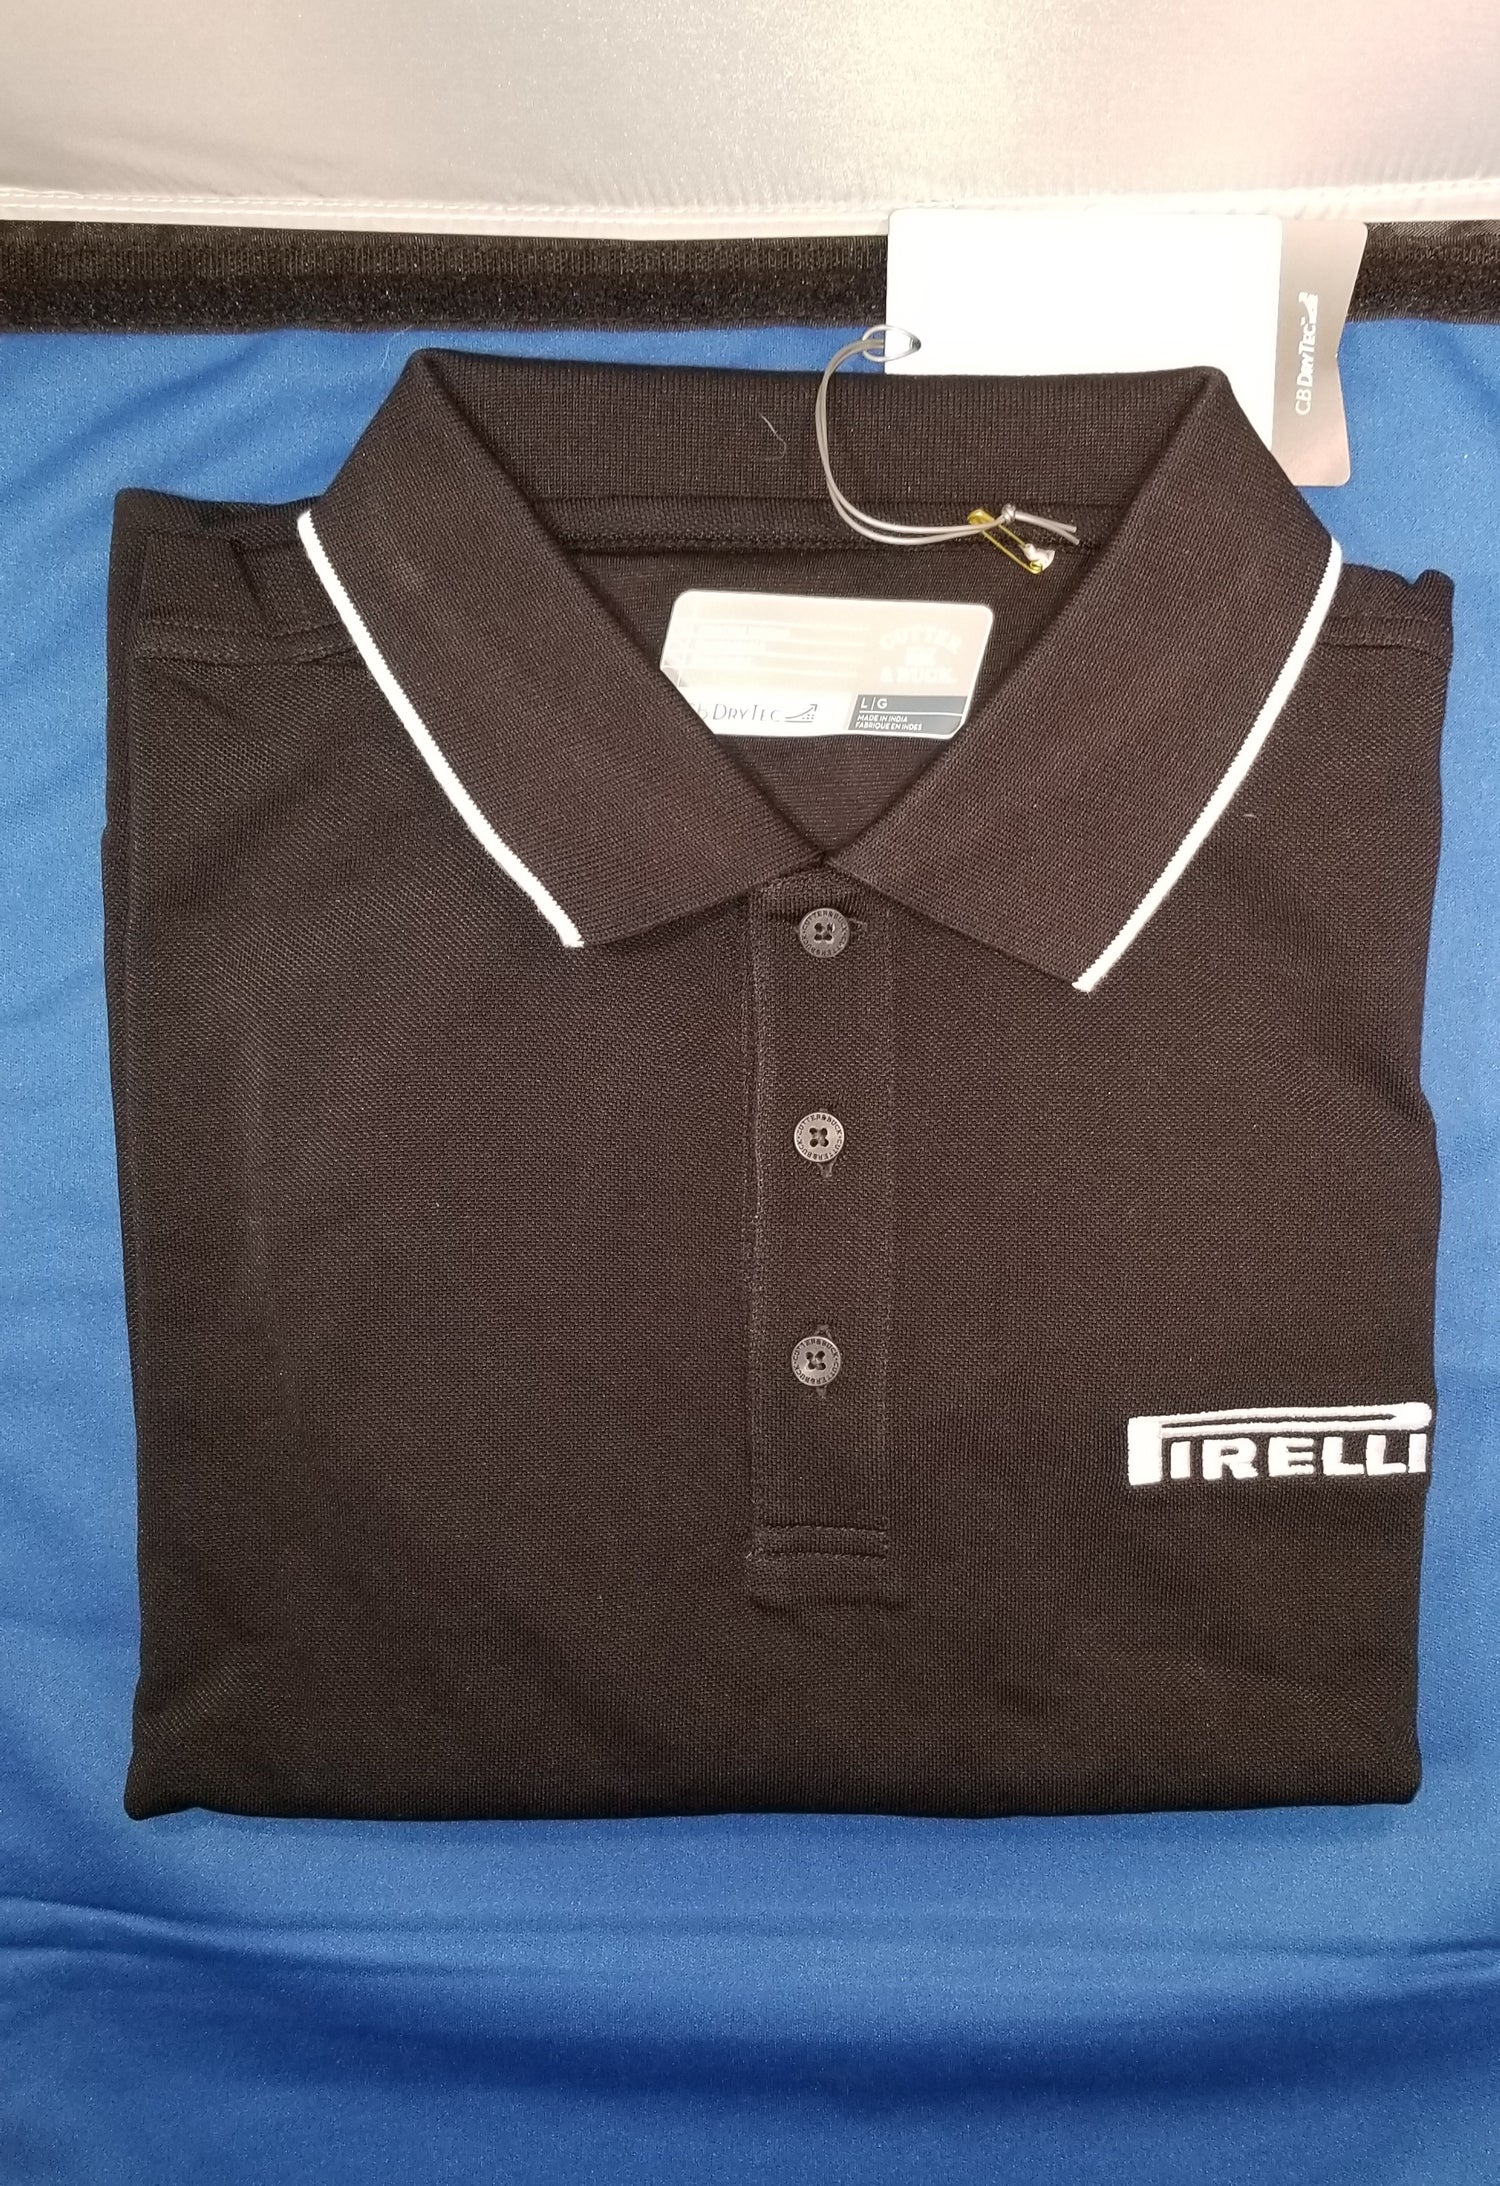 Image of Cutter & Buck Pirelli Polo